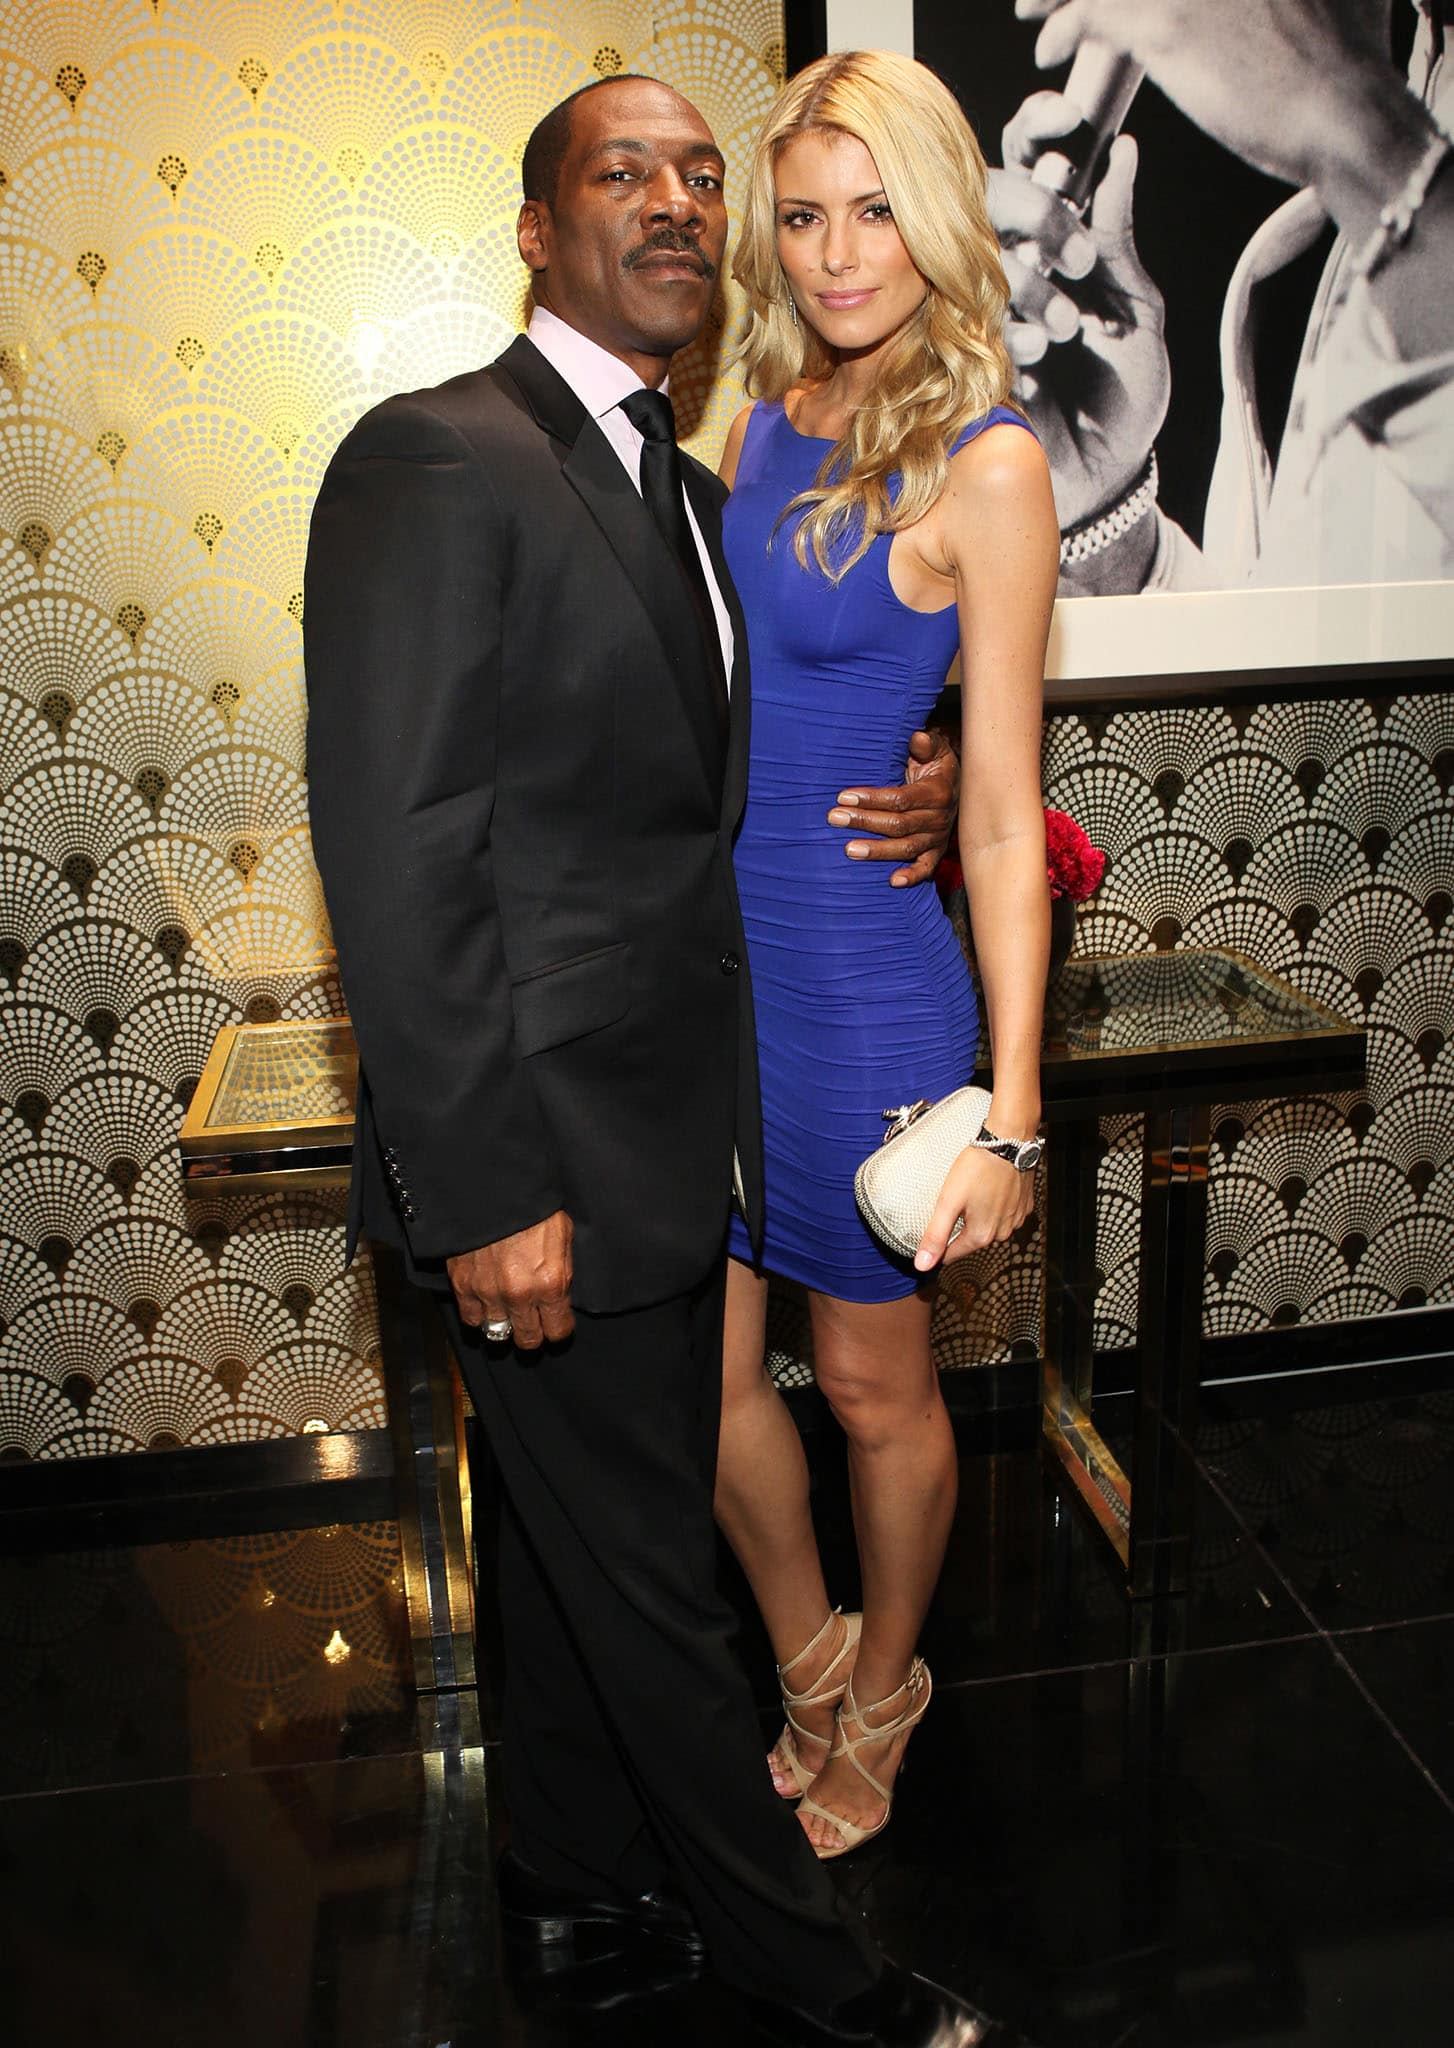 Eddie Murphy and Paige Butcher make their relationship public at Spike TV's Eddie Murphy: One Night Only tribute on November 3, 2012